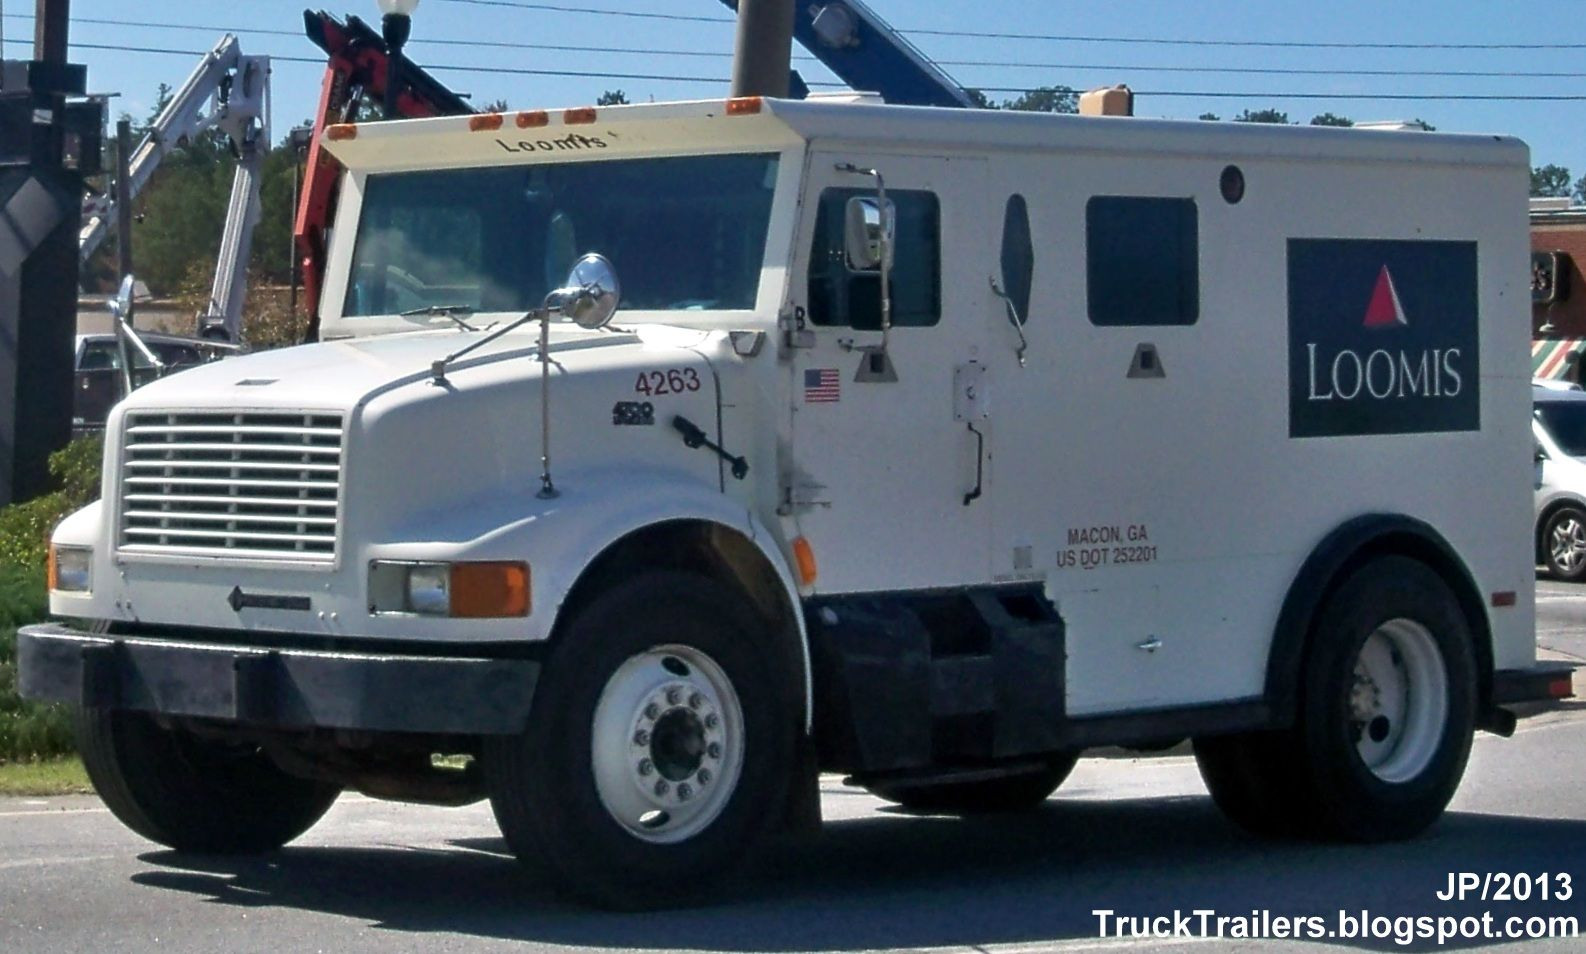 Old Armored Trucks for Sale | MACON GA. Attorney College ...